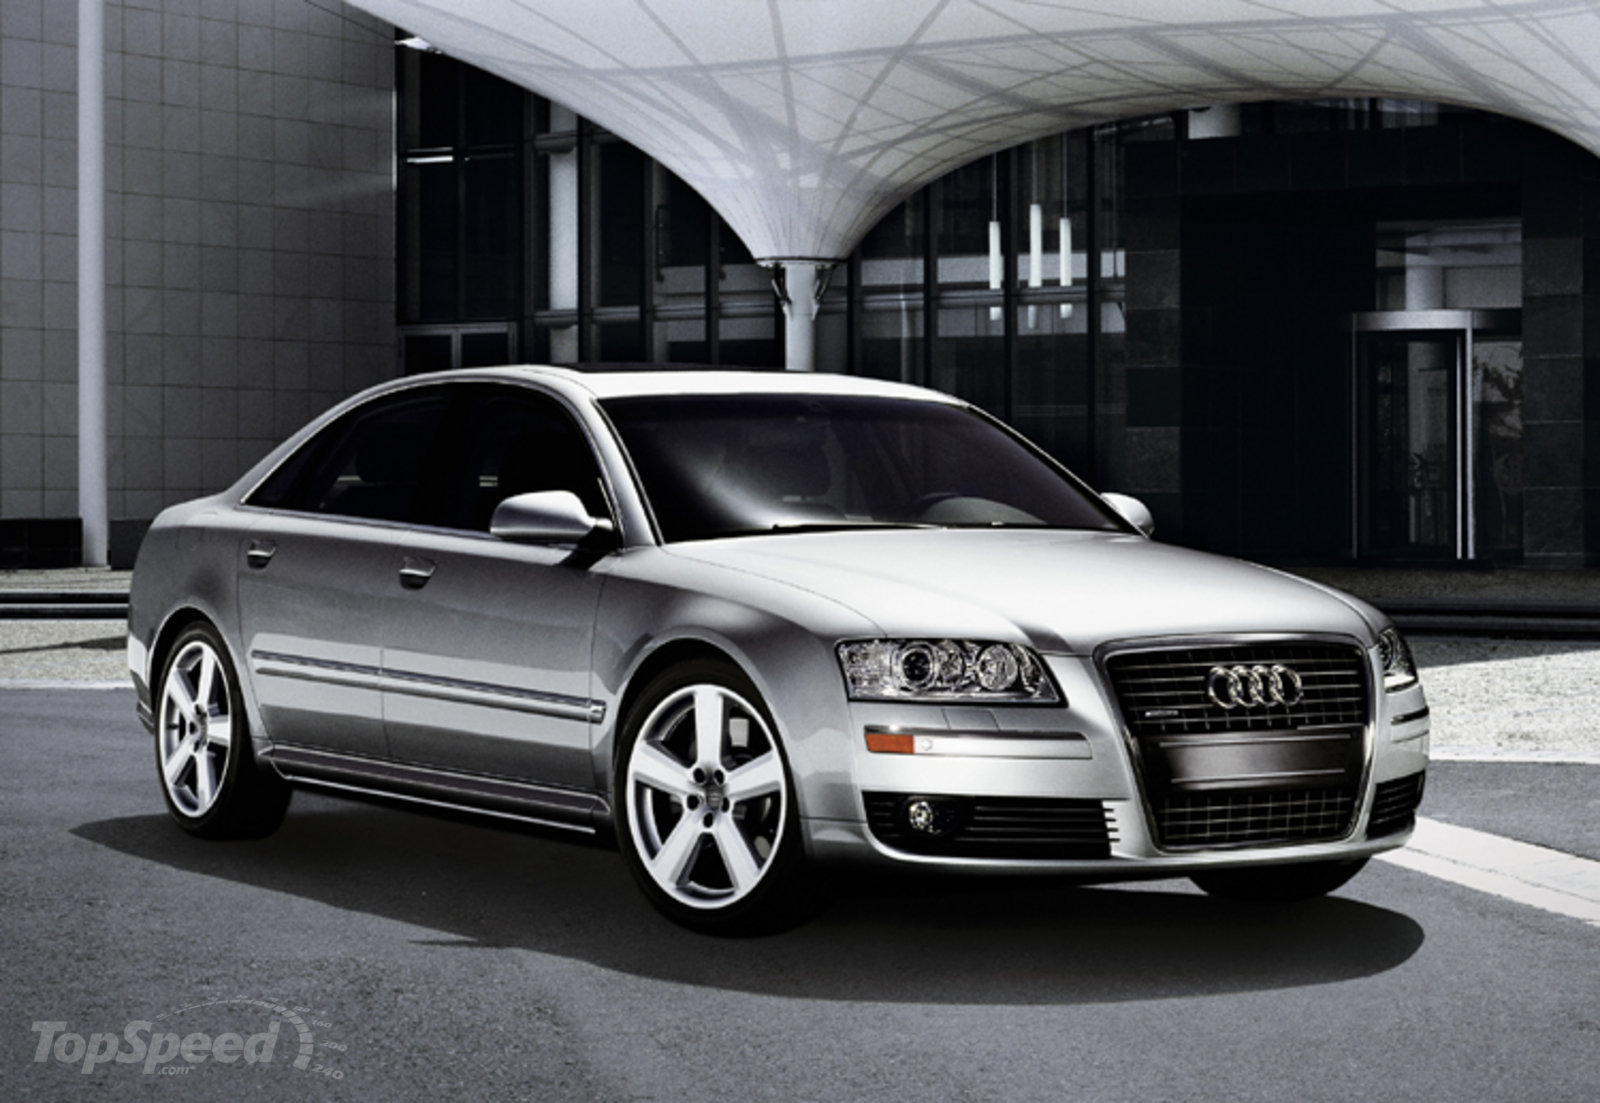 2007 audi a8 review top speed. Black Bedroom Furniture Sets. Home Design Ideas